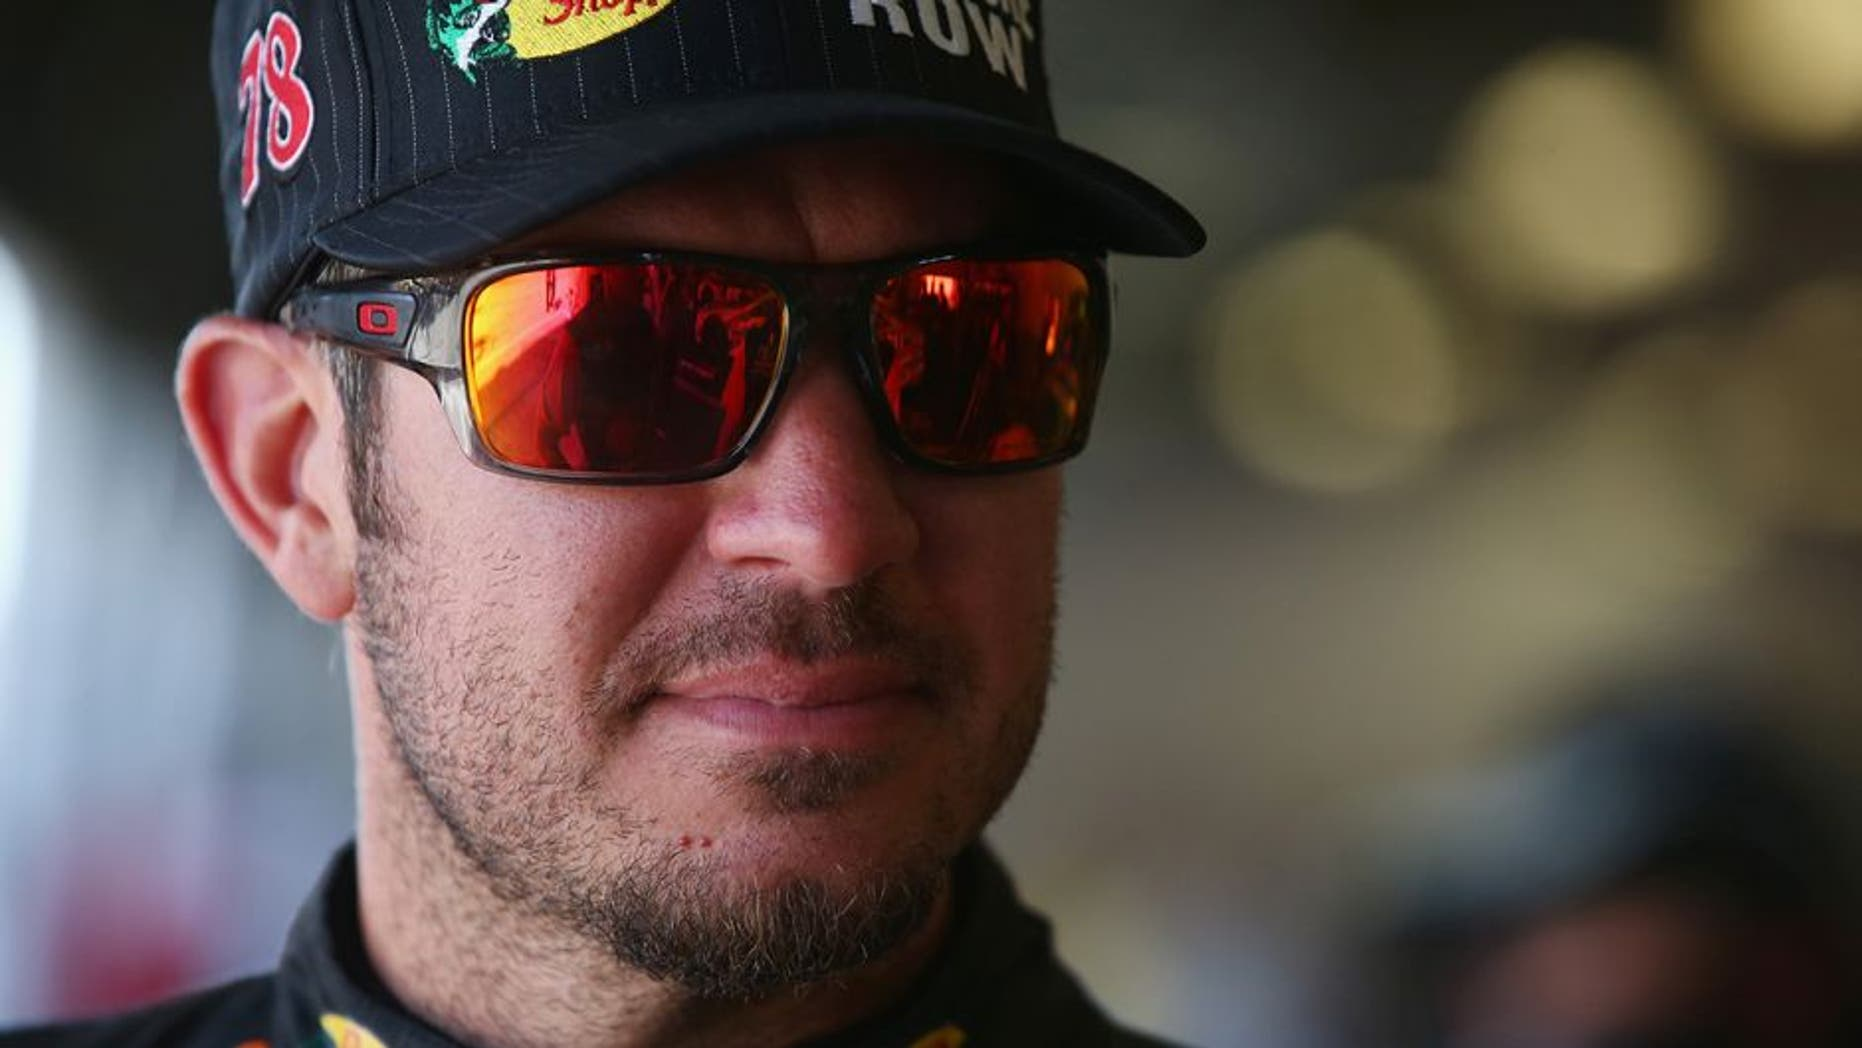 DAYTONA BEACH, FL - JULY 01: Martin Truex Jr., driver of the #78 Bass Pro Shops/Tracker Boats Toyota, stands in the garage area during practice for the NASCAR Sprint Cup Series Coke Zero 400 at Daytona International Speedway on July 1, 2016 in Daytona Beach, Florida. (Photo by Sarah Crabill/NASCAR via Getty Images)